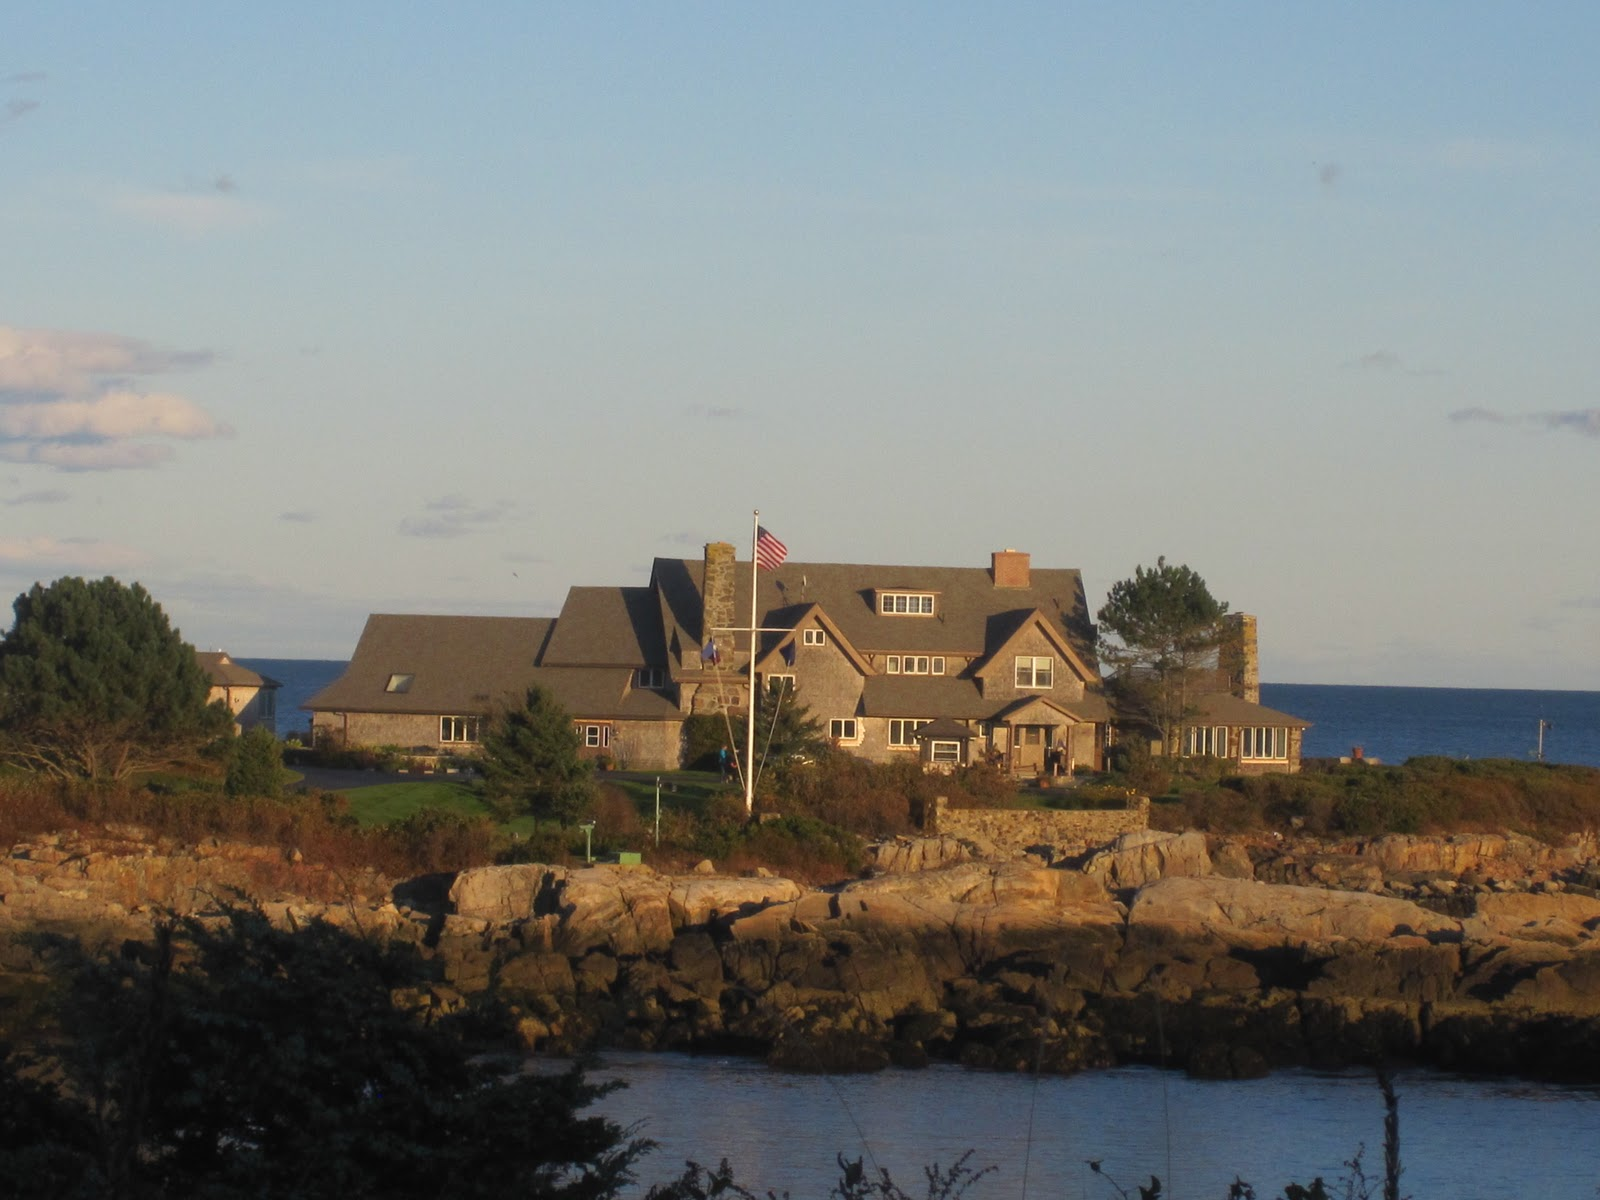 Cannundrums: The Clam Shack - Kennebunkport, Maine